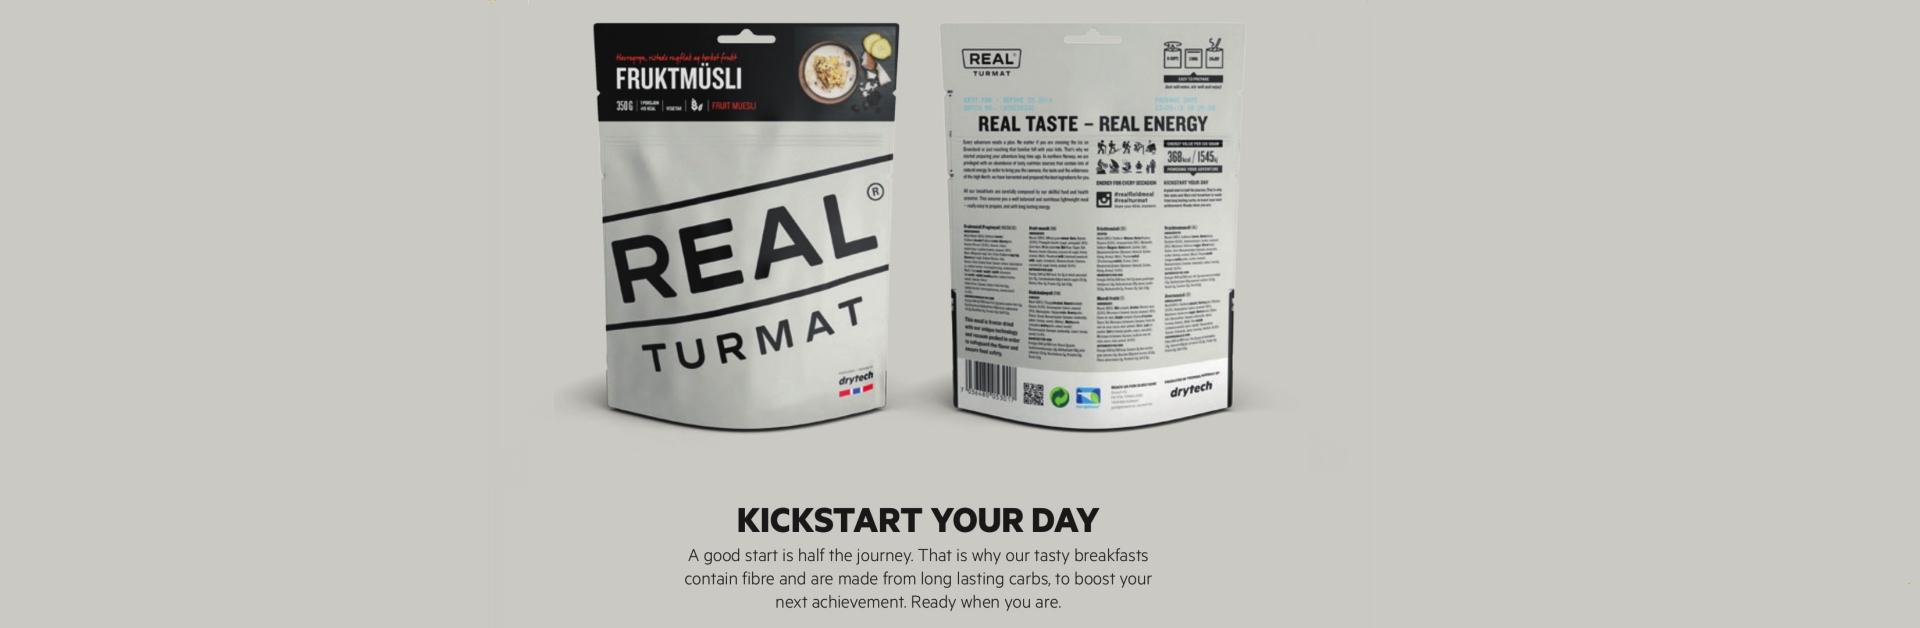 Kickstart your day with Turmat